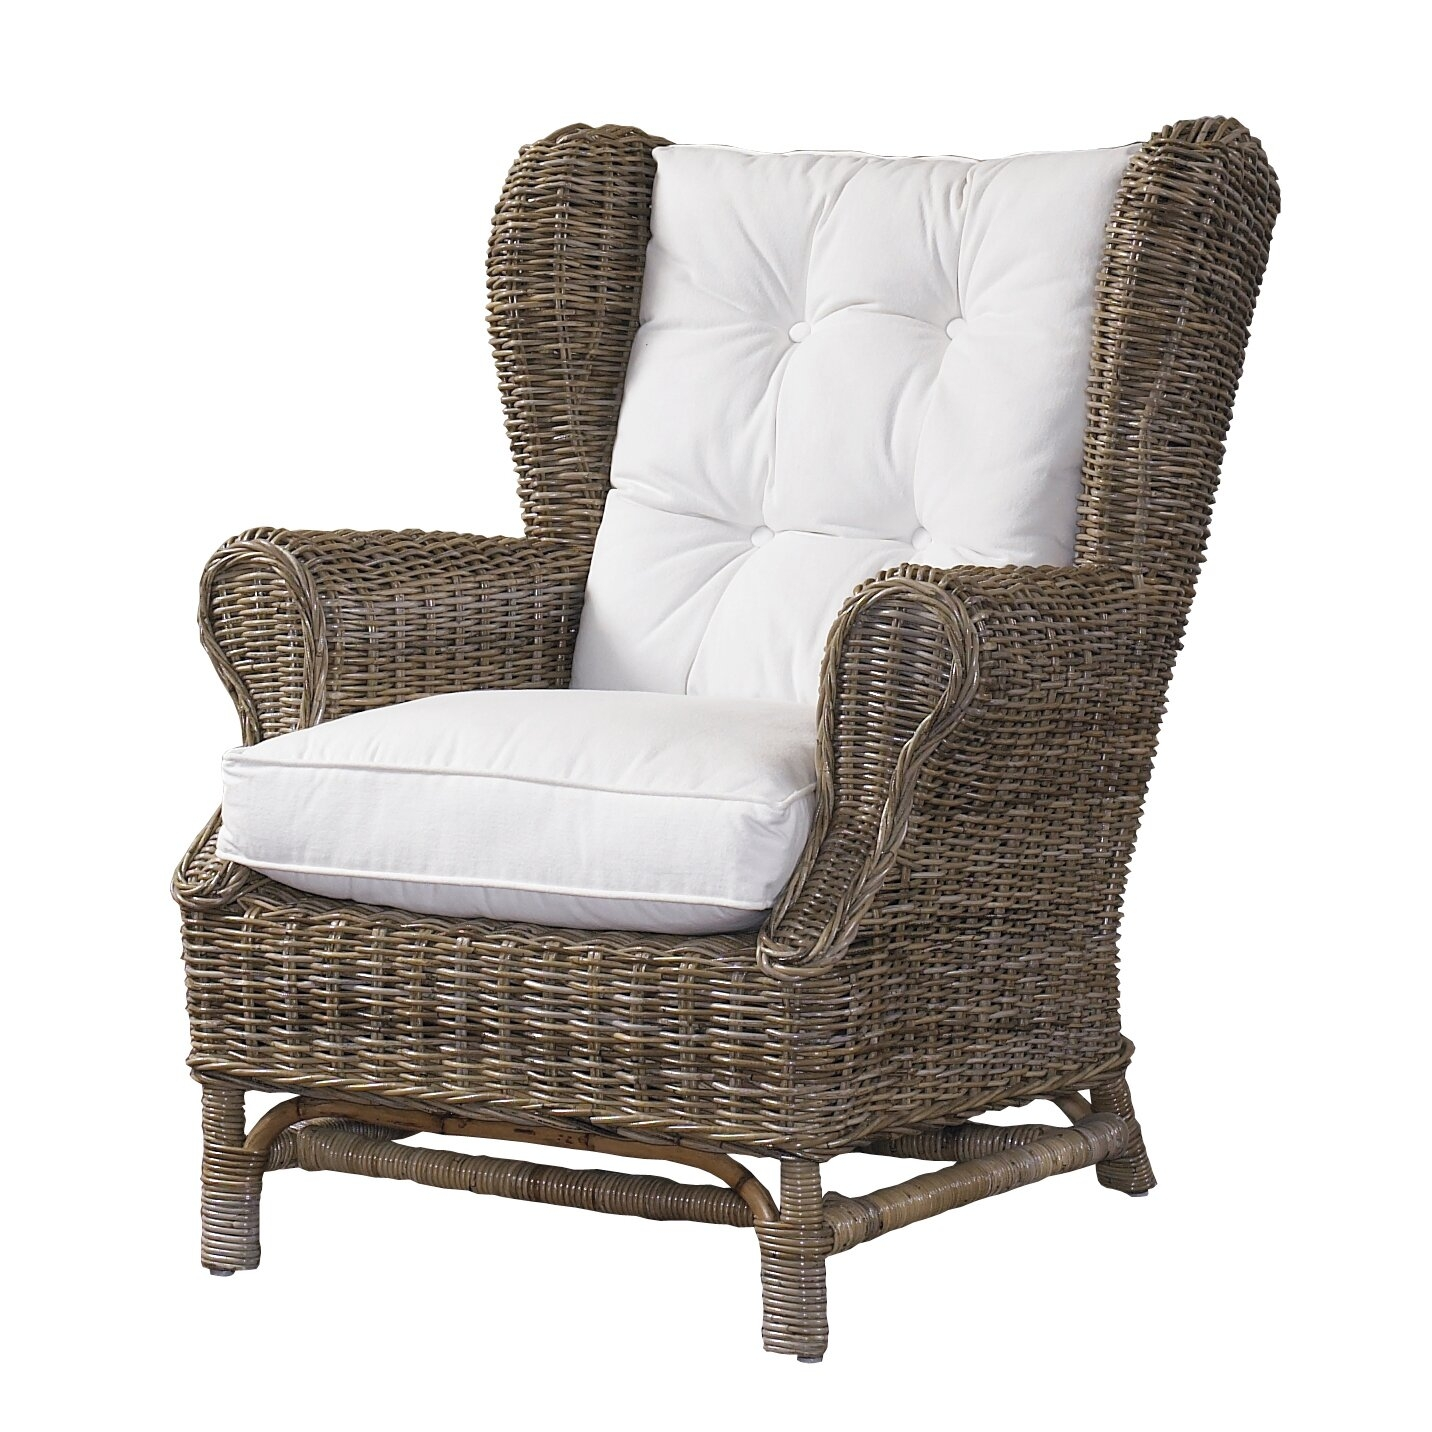 comfortable wicker chairs steamer chair cushions outdoor arm ideas on foter northern nautical padmas plantation kubu wingback